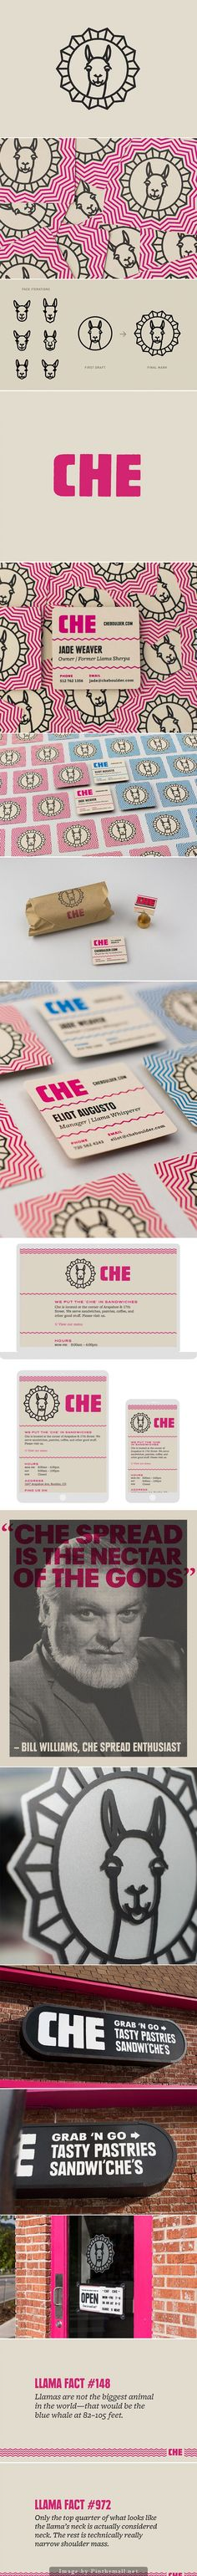 Cafe Che Cafe Che Branding / llama / logo / branding / identity / illustration / animal drawing / geometric / simple lines and shapes / pink and black / business card / stationary / signage / restaurant Graphisches Design, Design Logo, Design Poster, Brand Identity Design, Graphic Design Branding, Corporate Design, Design Cars, Corporate Identity, Signage Design